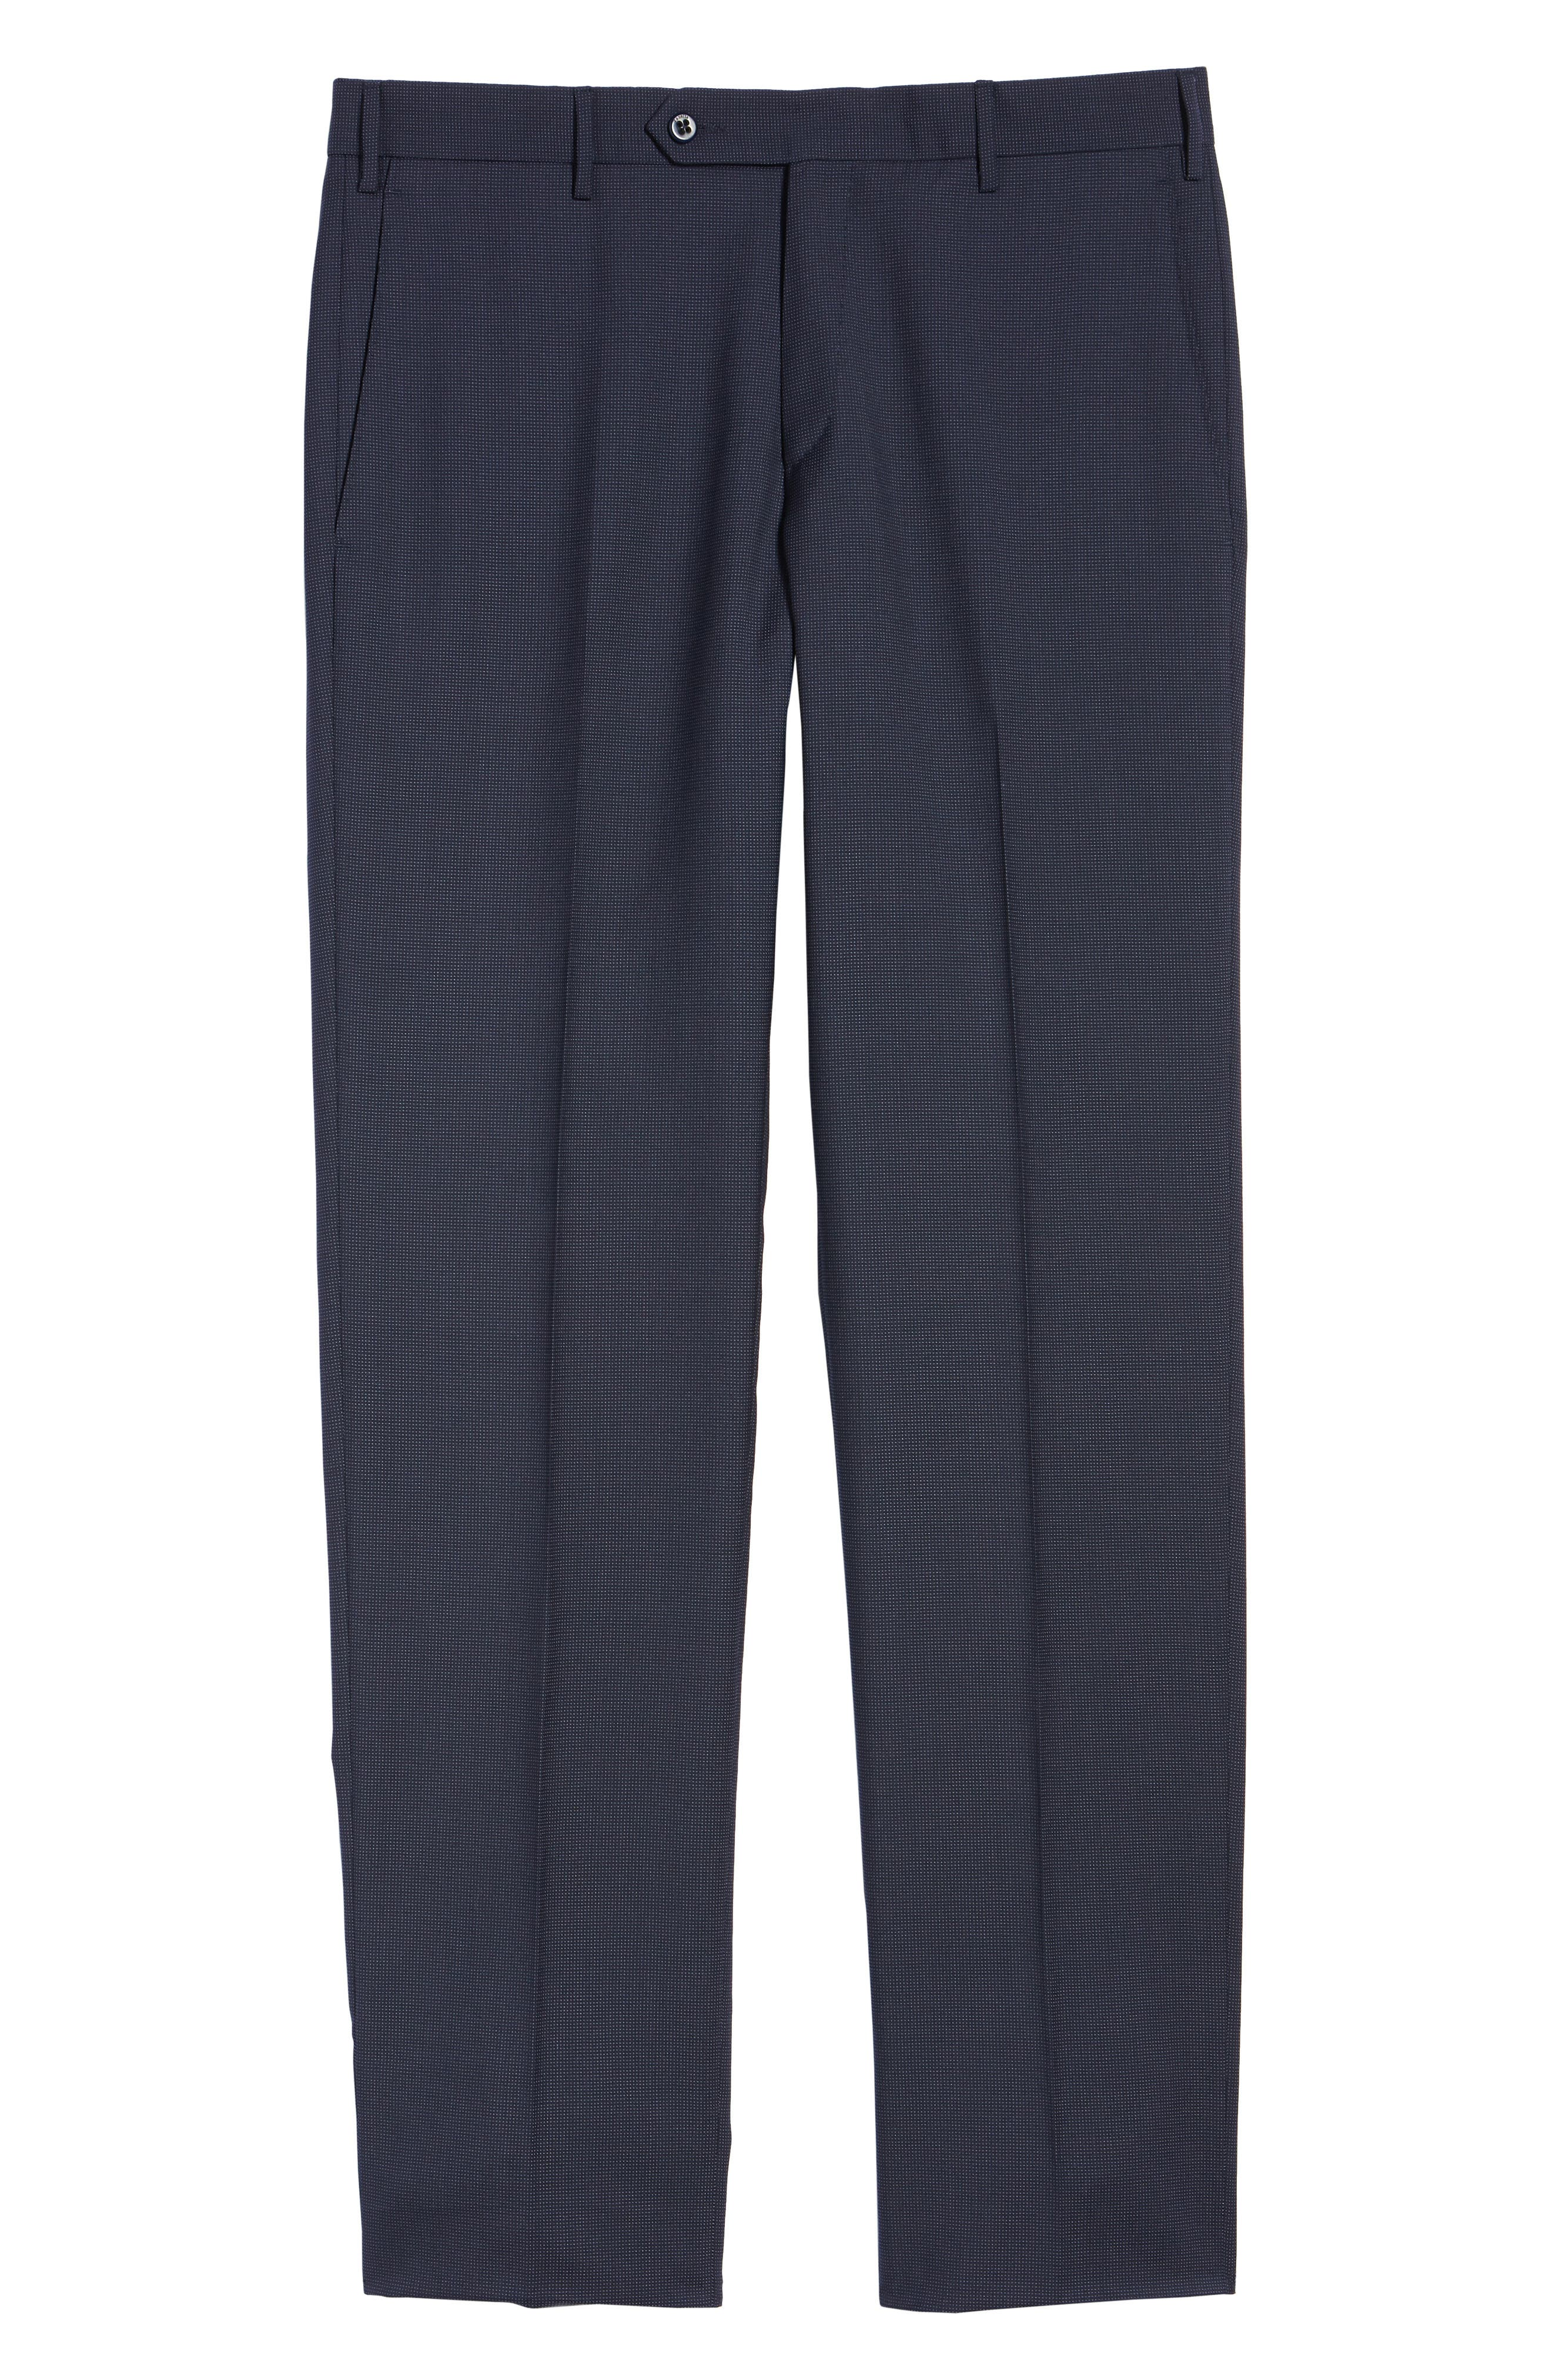 Parker Flat Front Pindot Wool Trousers,                             Alternate thumbnail 6, color,                             Navy